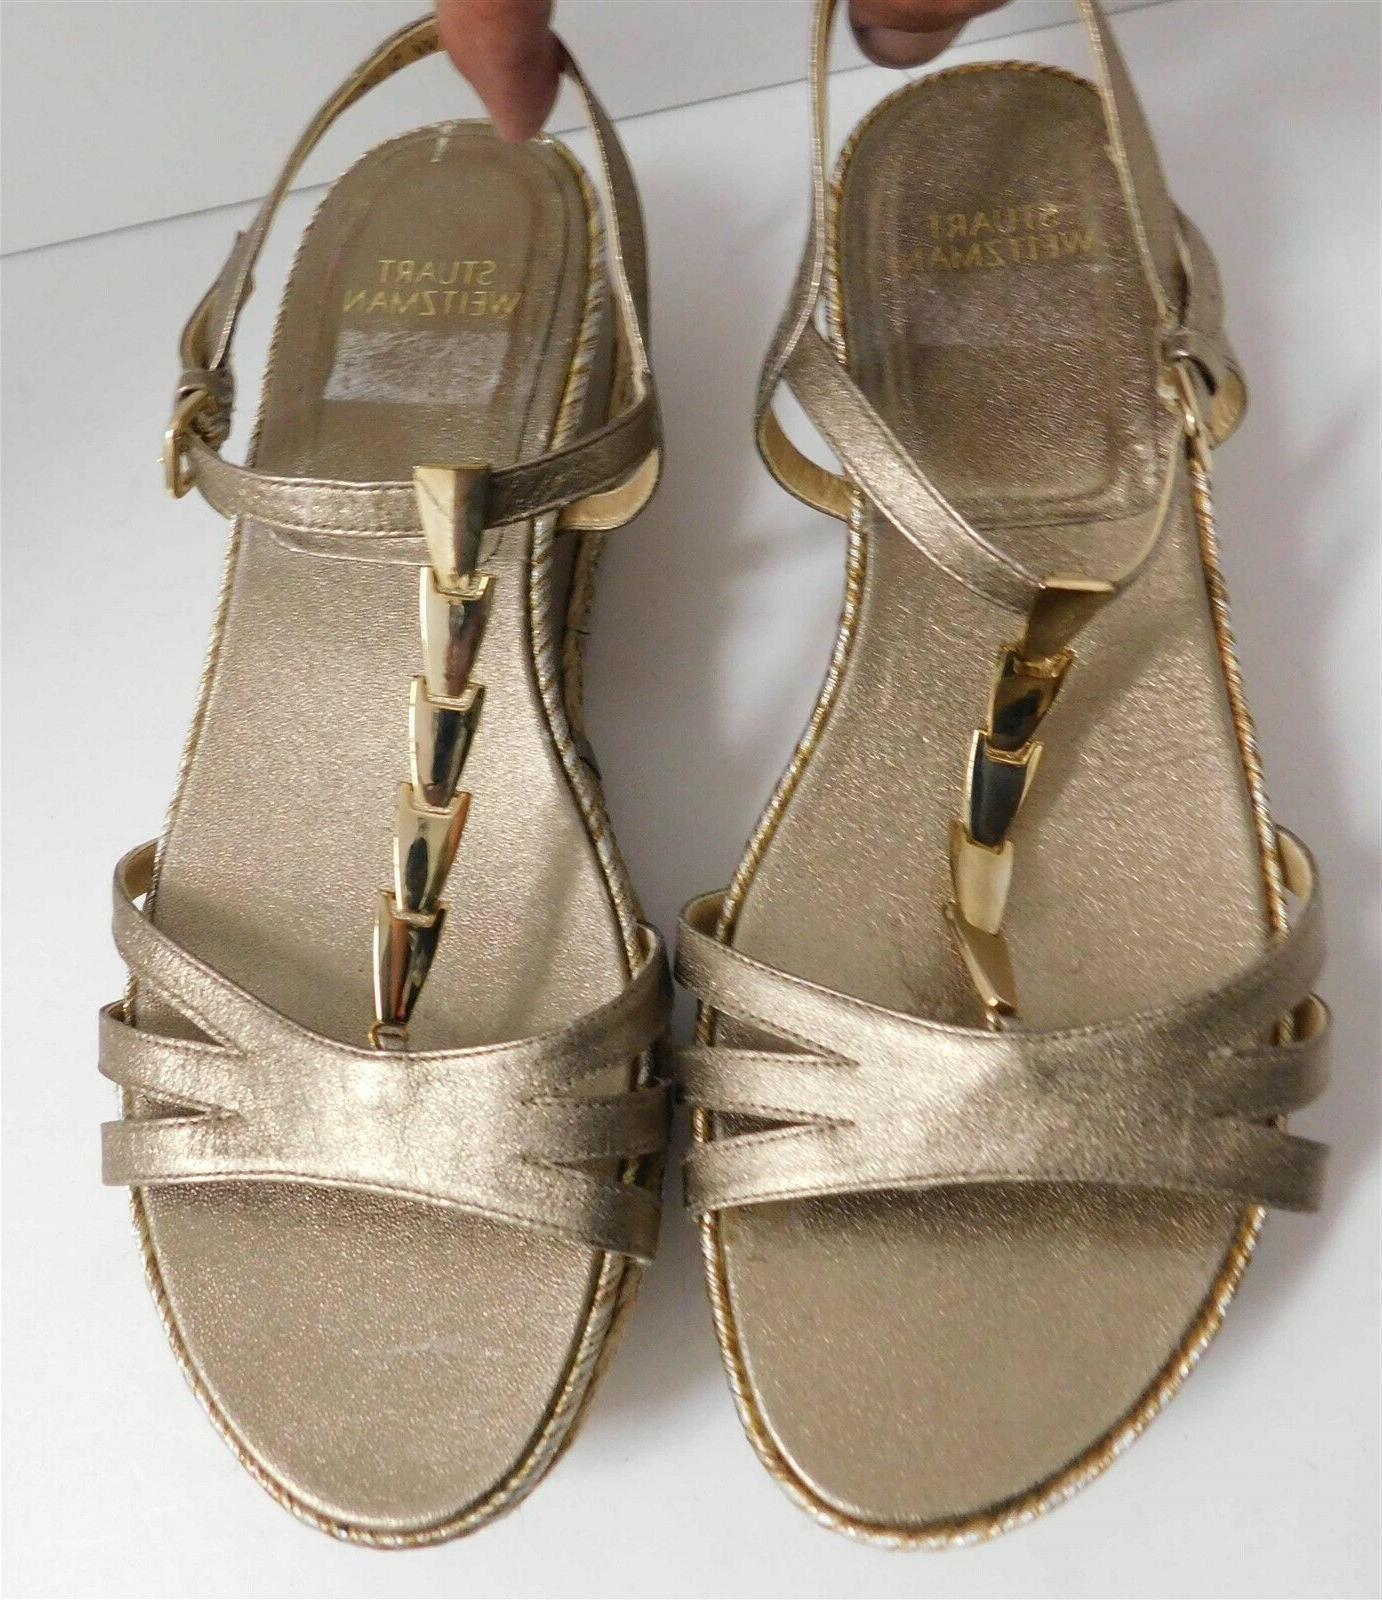 New Strappy Wedge Sandals M